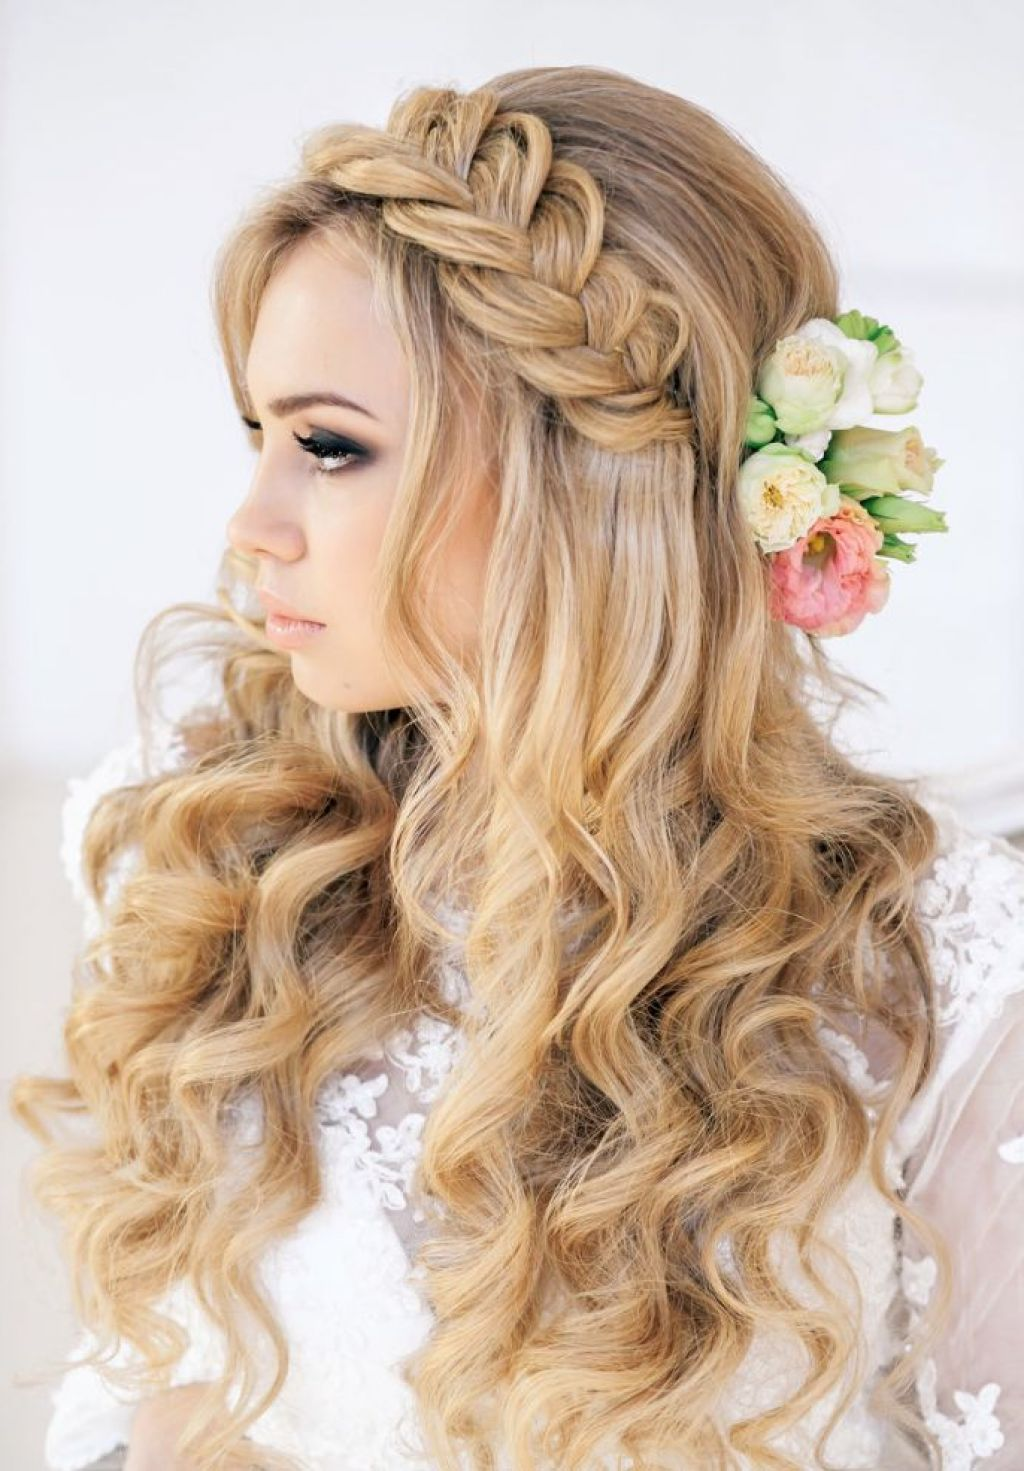 65 Prom Hairstyles That Complement Your Beauty - Fave ...